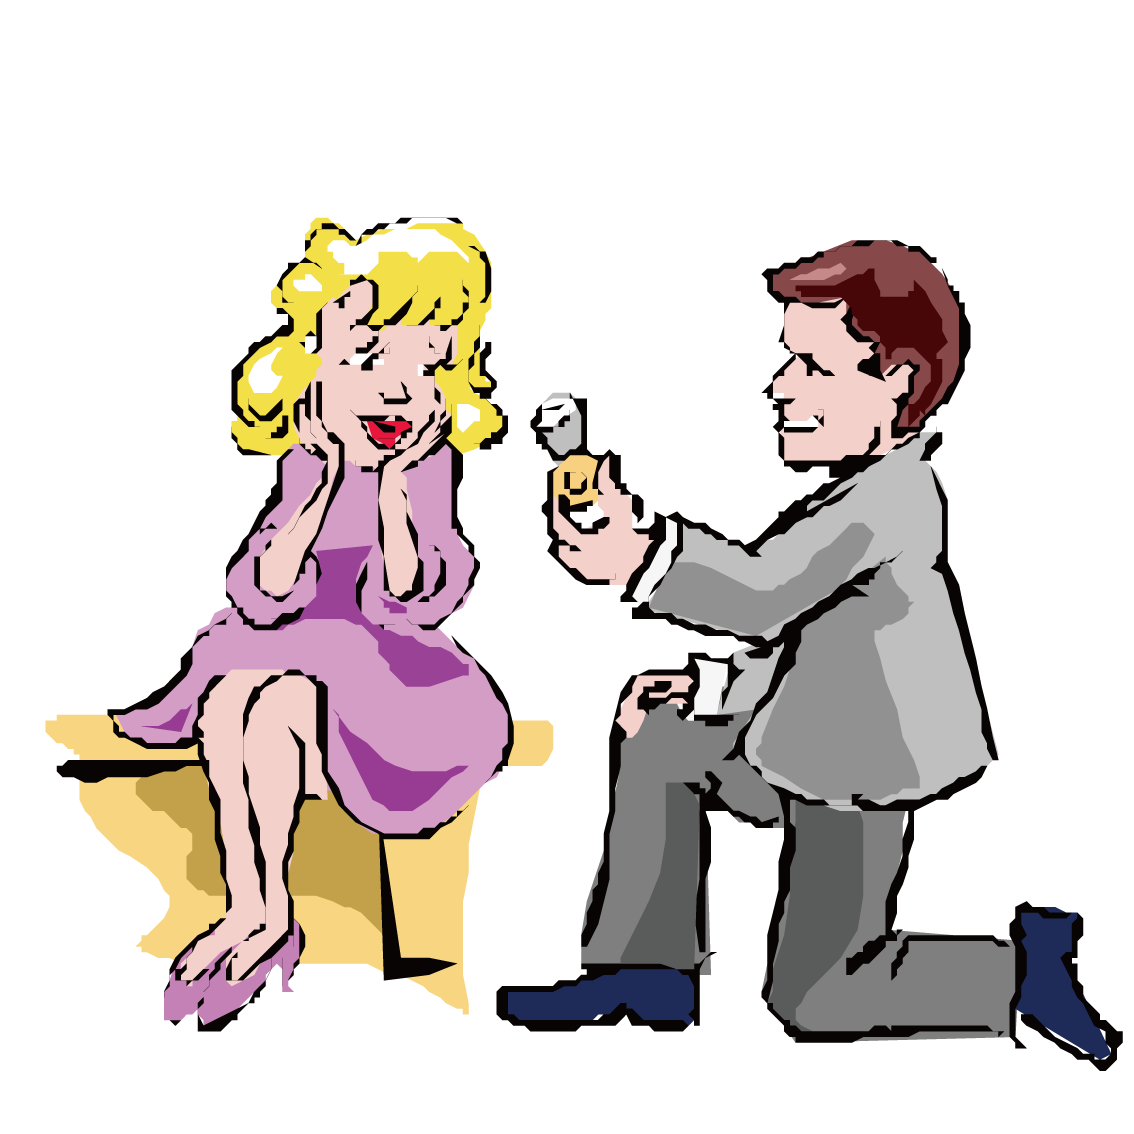 Communication transparent marriage. Animation marry a man